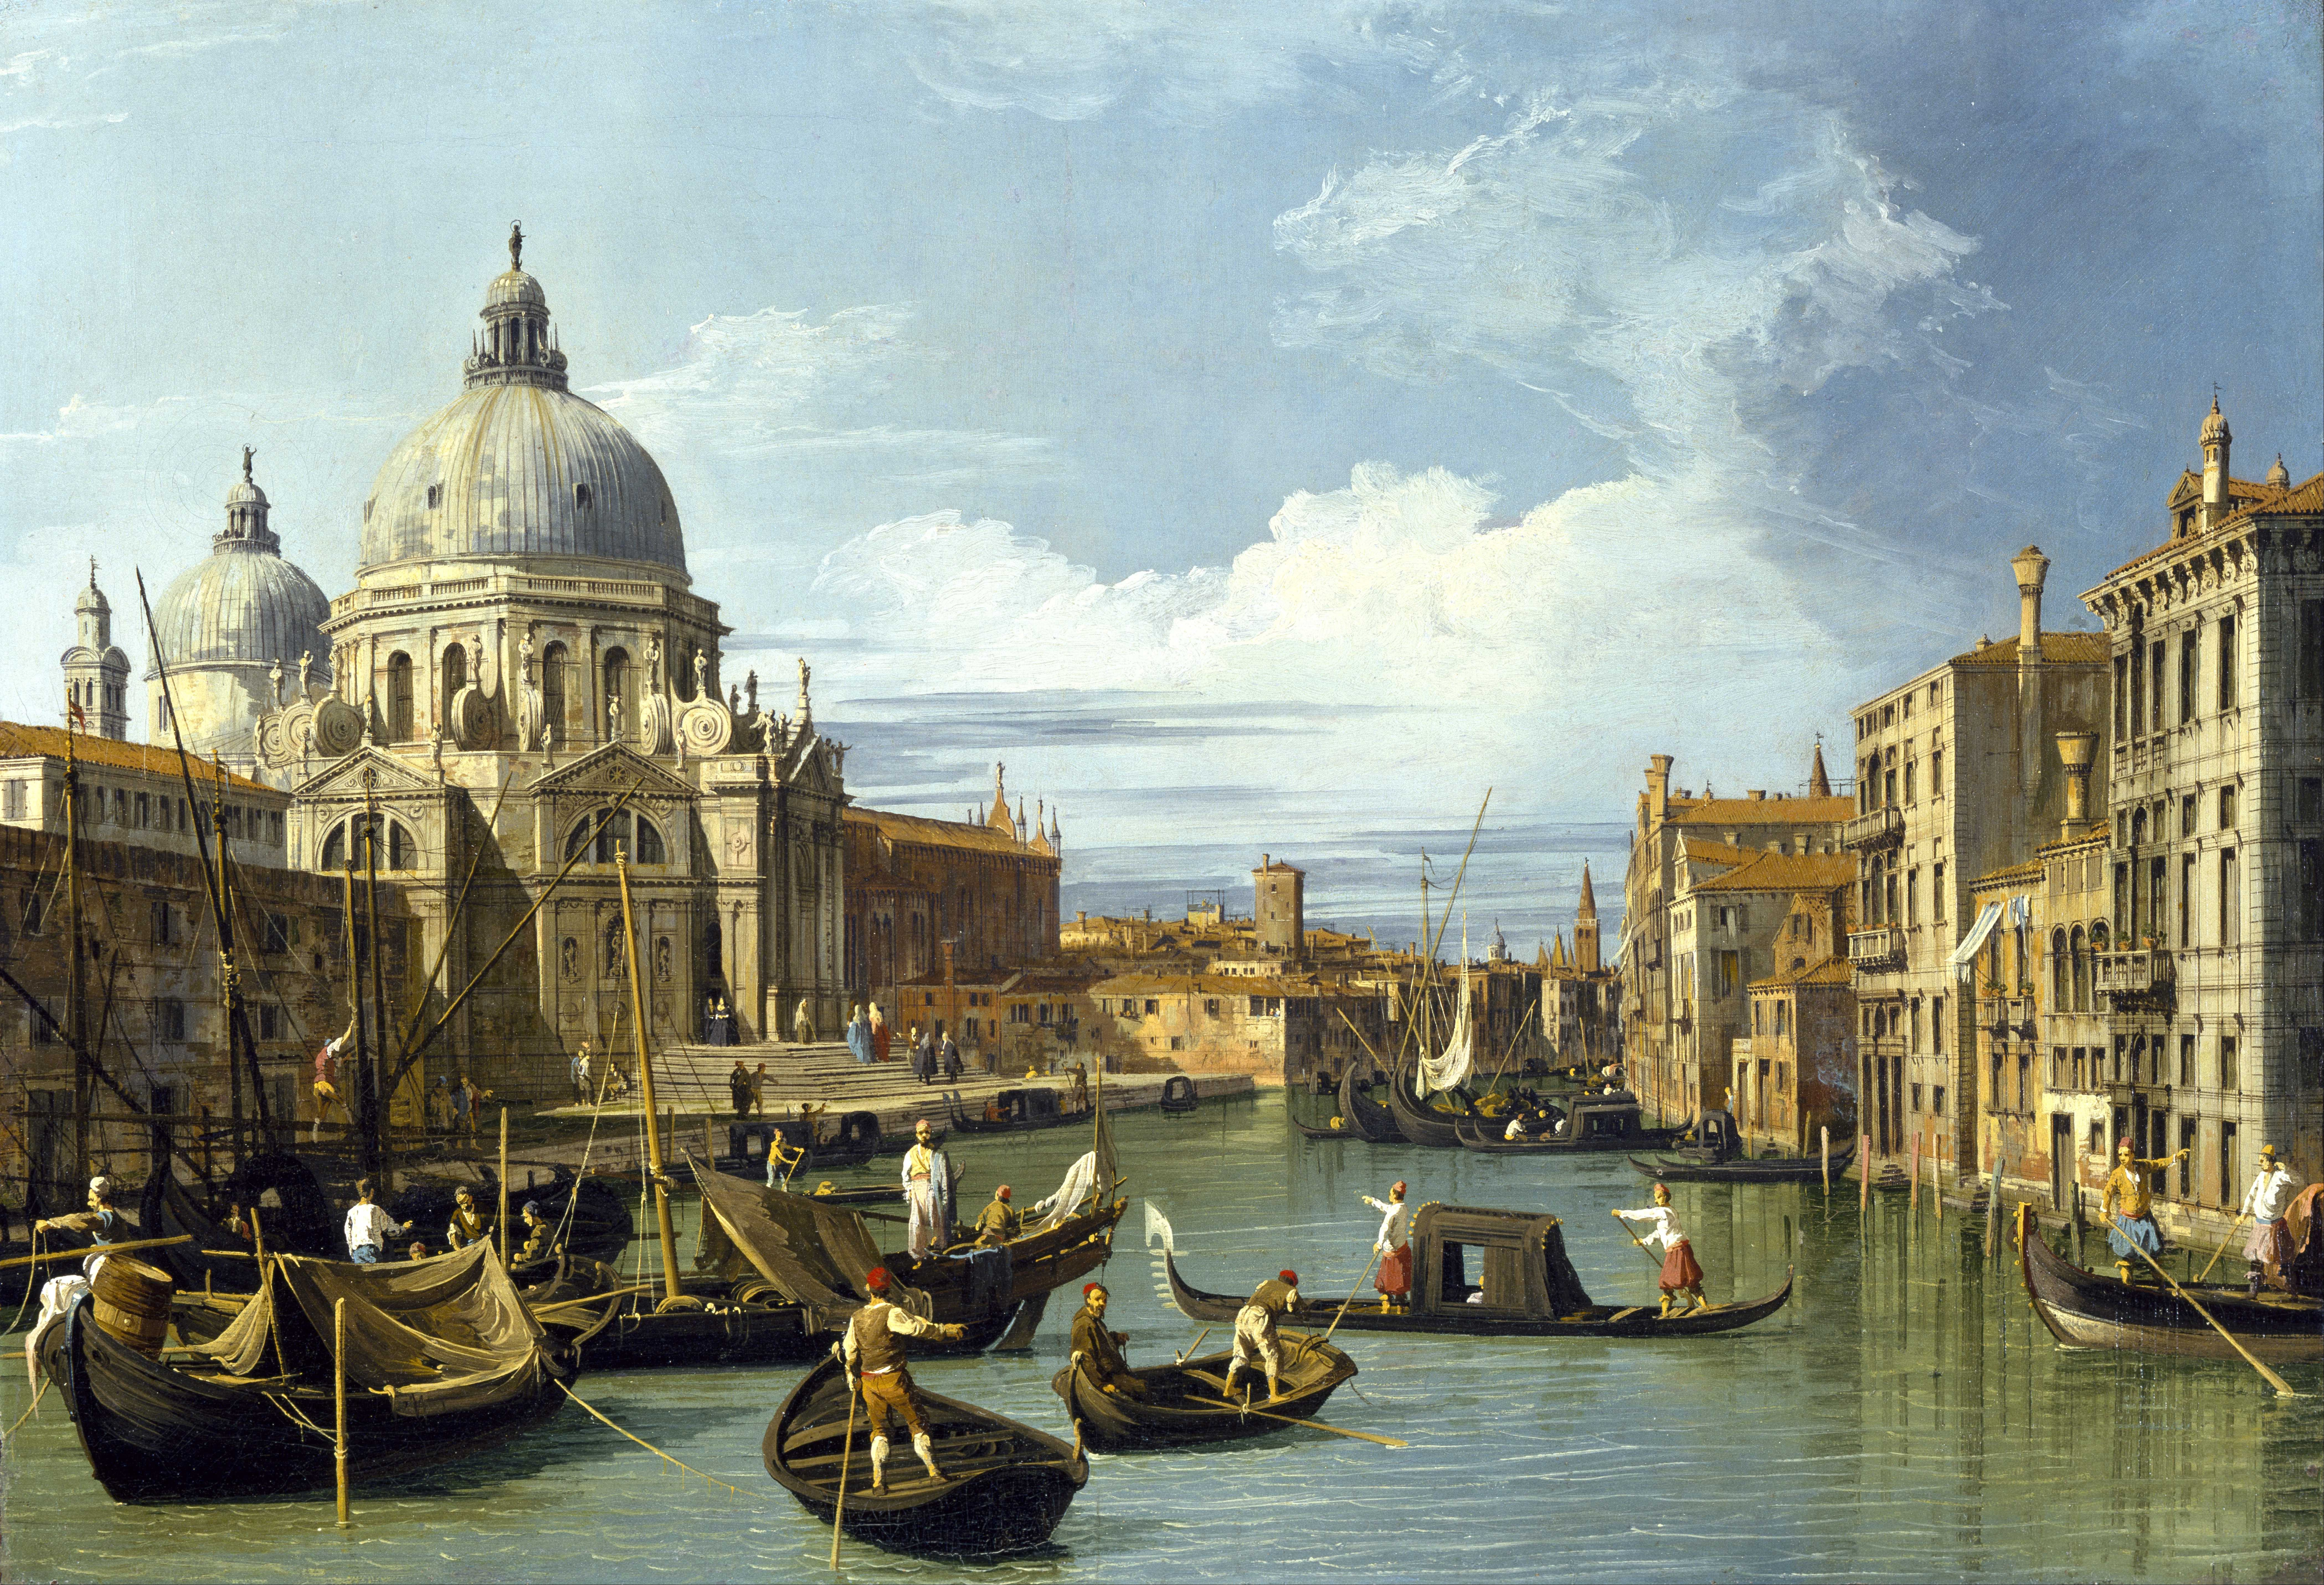 https://upload.wikimedia.org/wikipedia/commons/9/90/Canaletto_-_The_Entrance_to_the_Grand_Canal%2C_Venice_-_Google_Art_Project.jpg